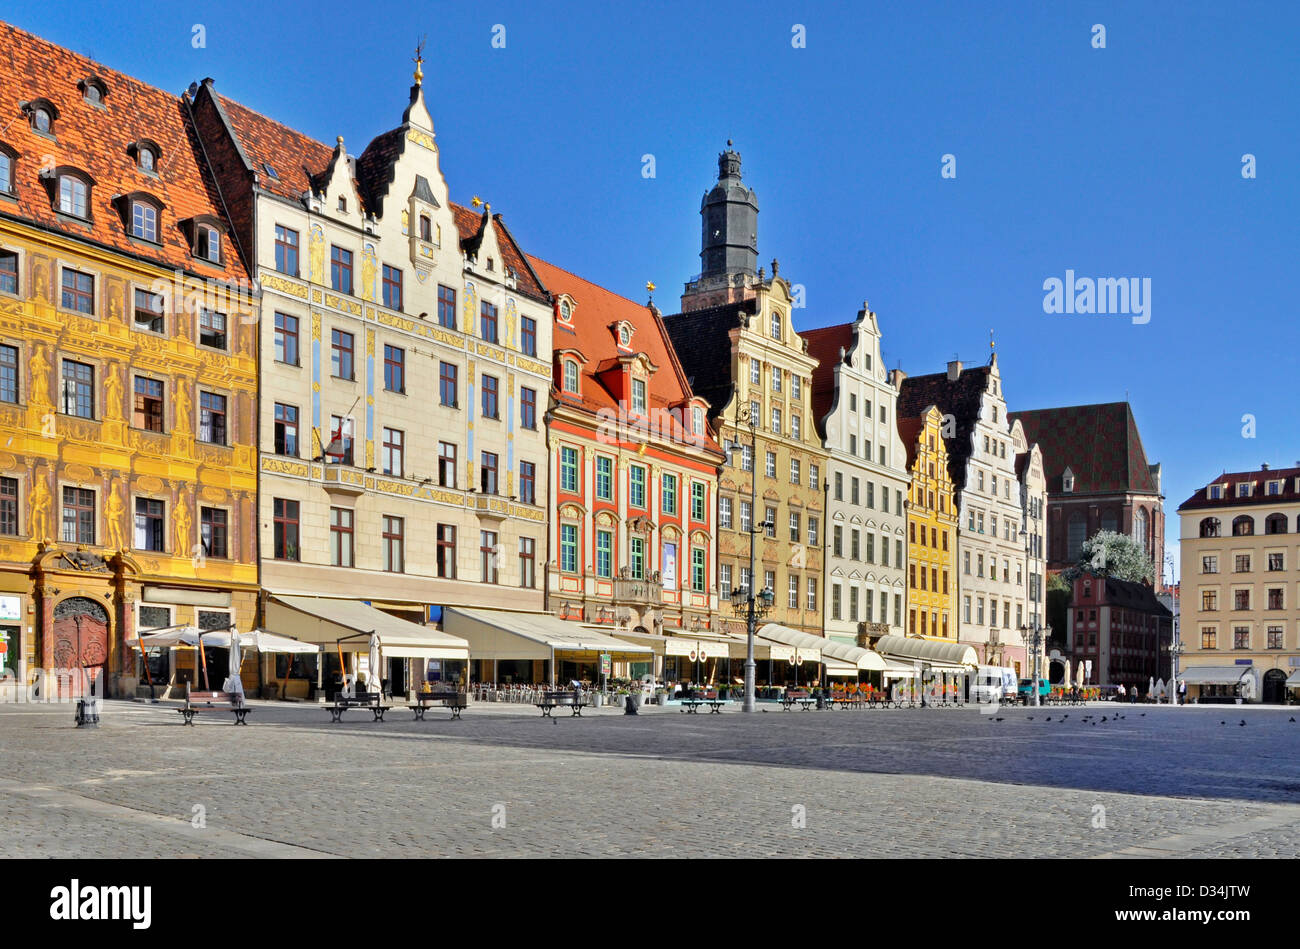 Rynek (Market Square) in Wroclaw (Breslau), Poland with old historic tenements Stock Photo